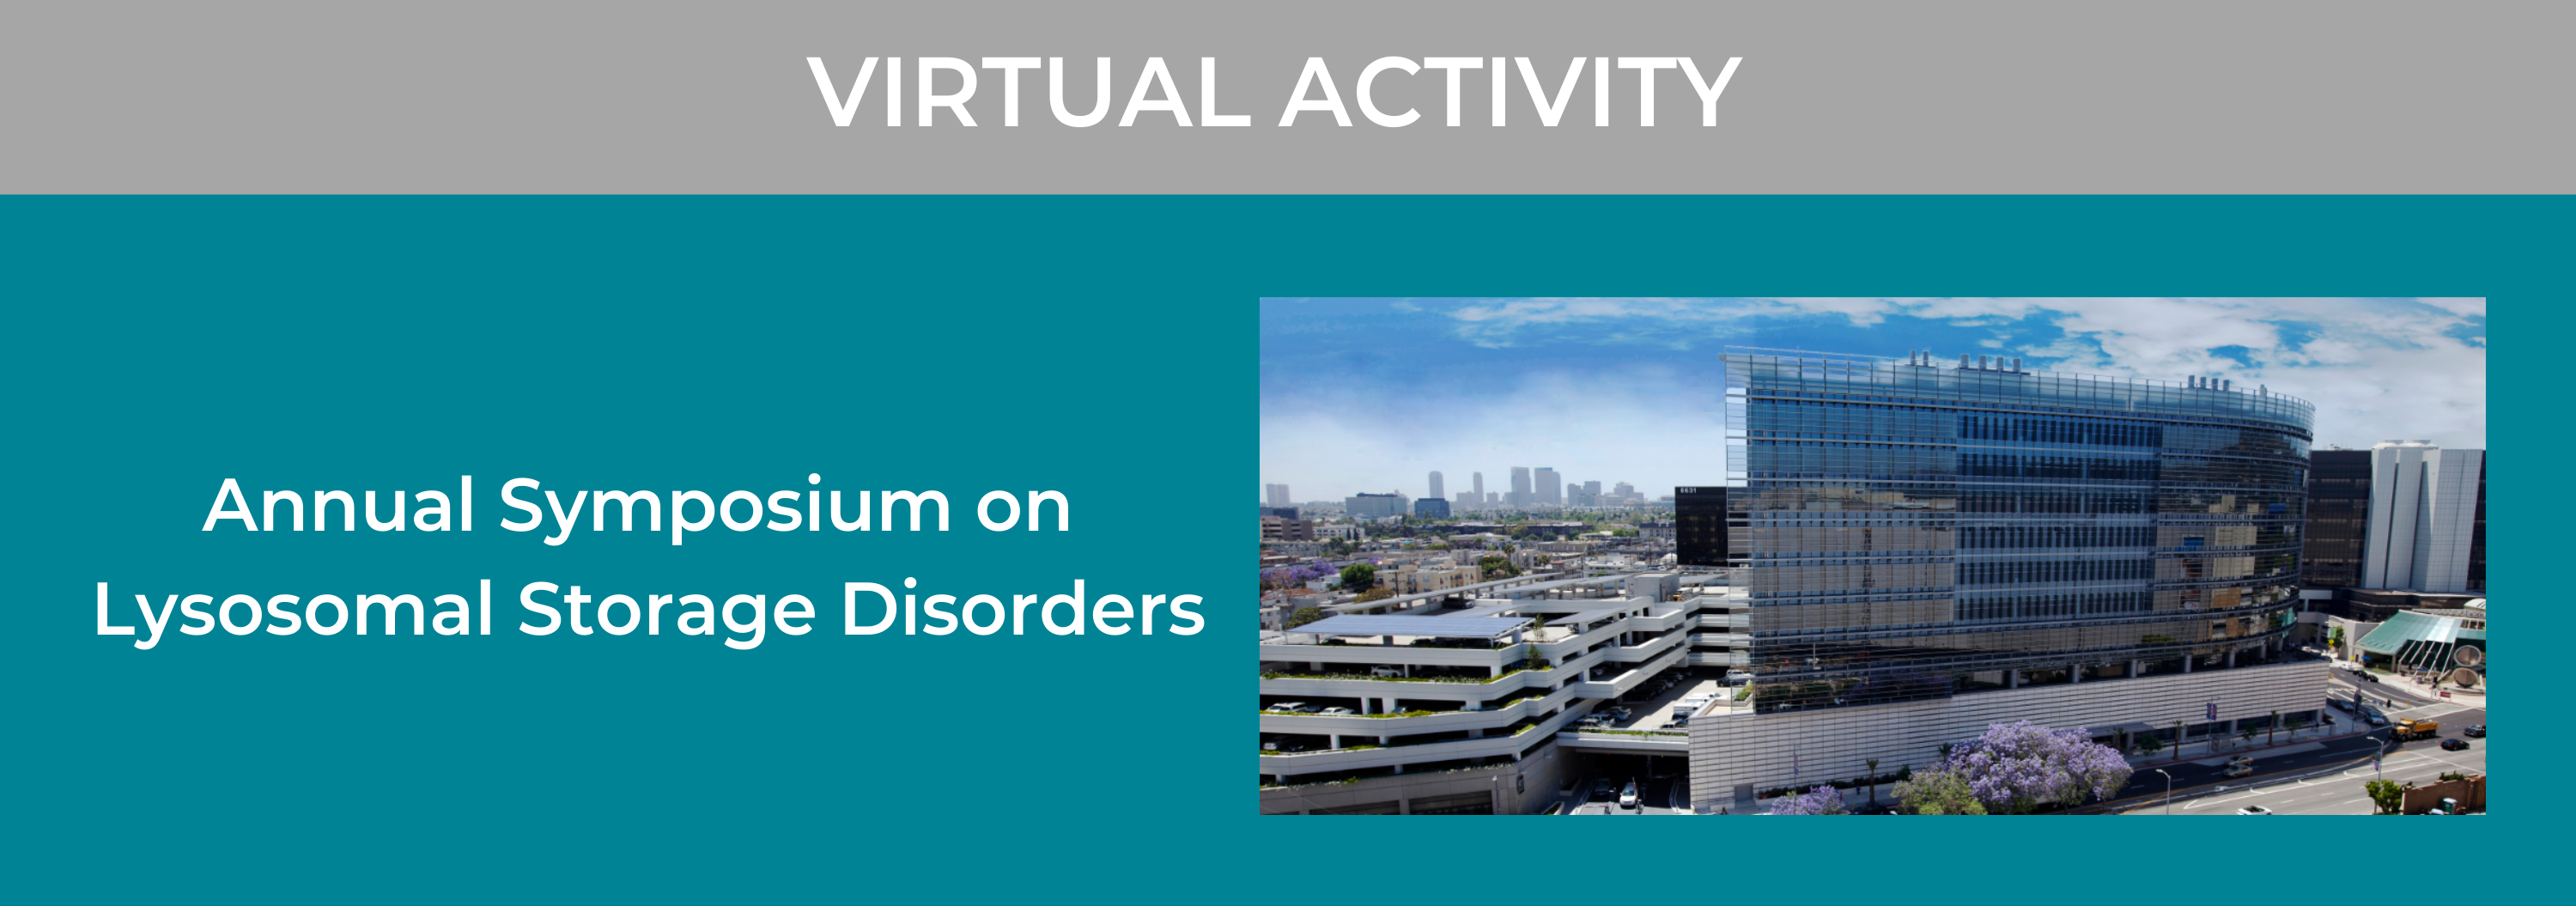 10th Annual Symposium on Lysosomal Storage Disorders Banner